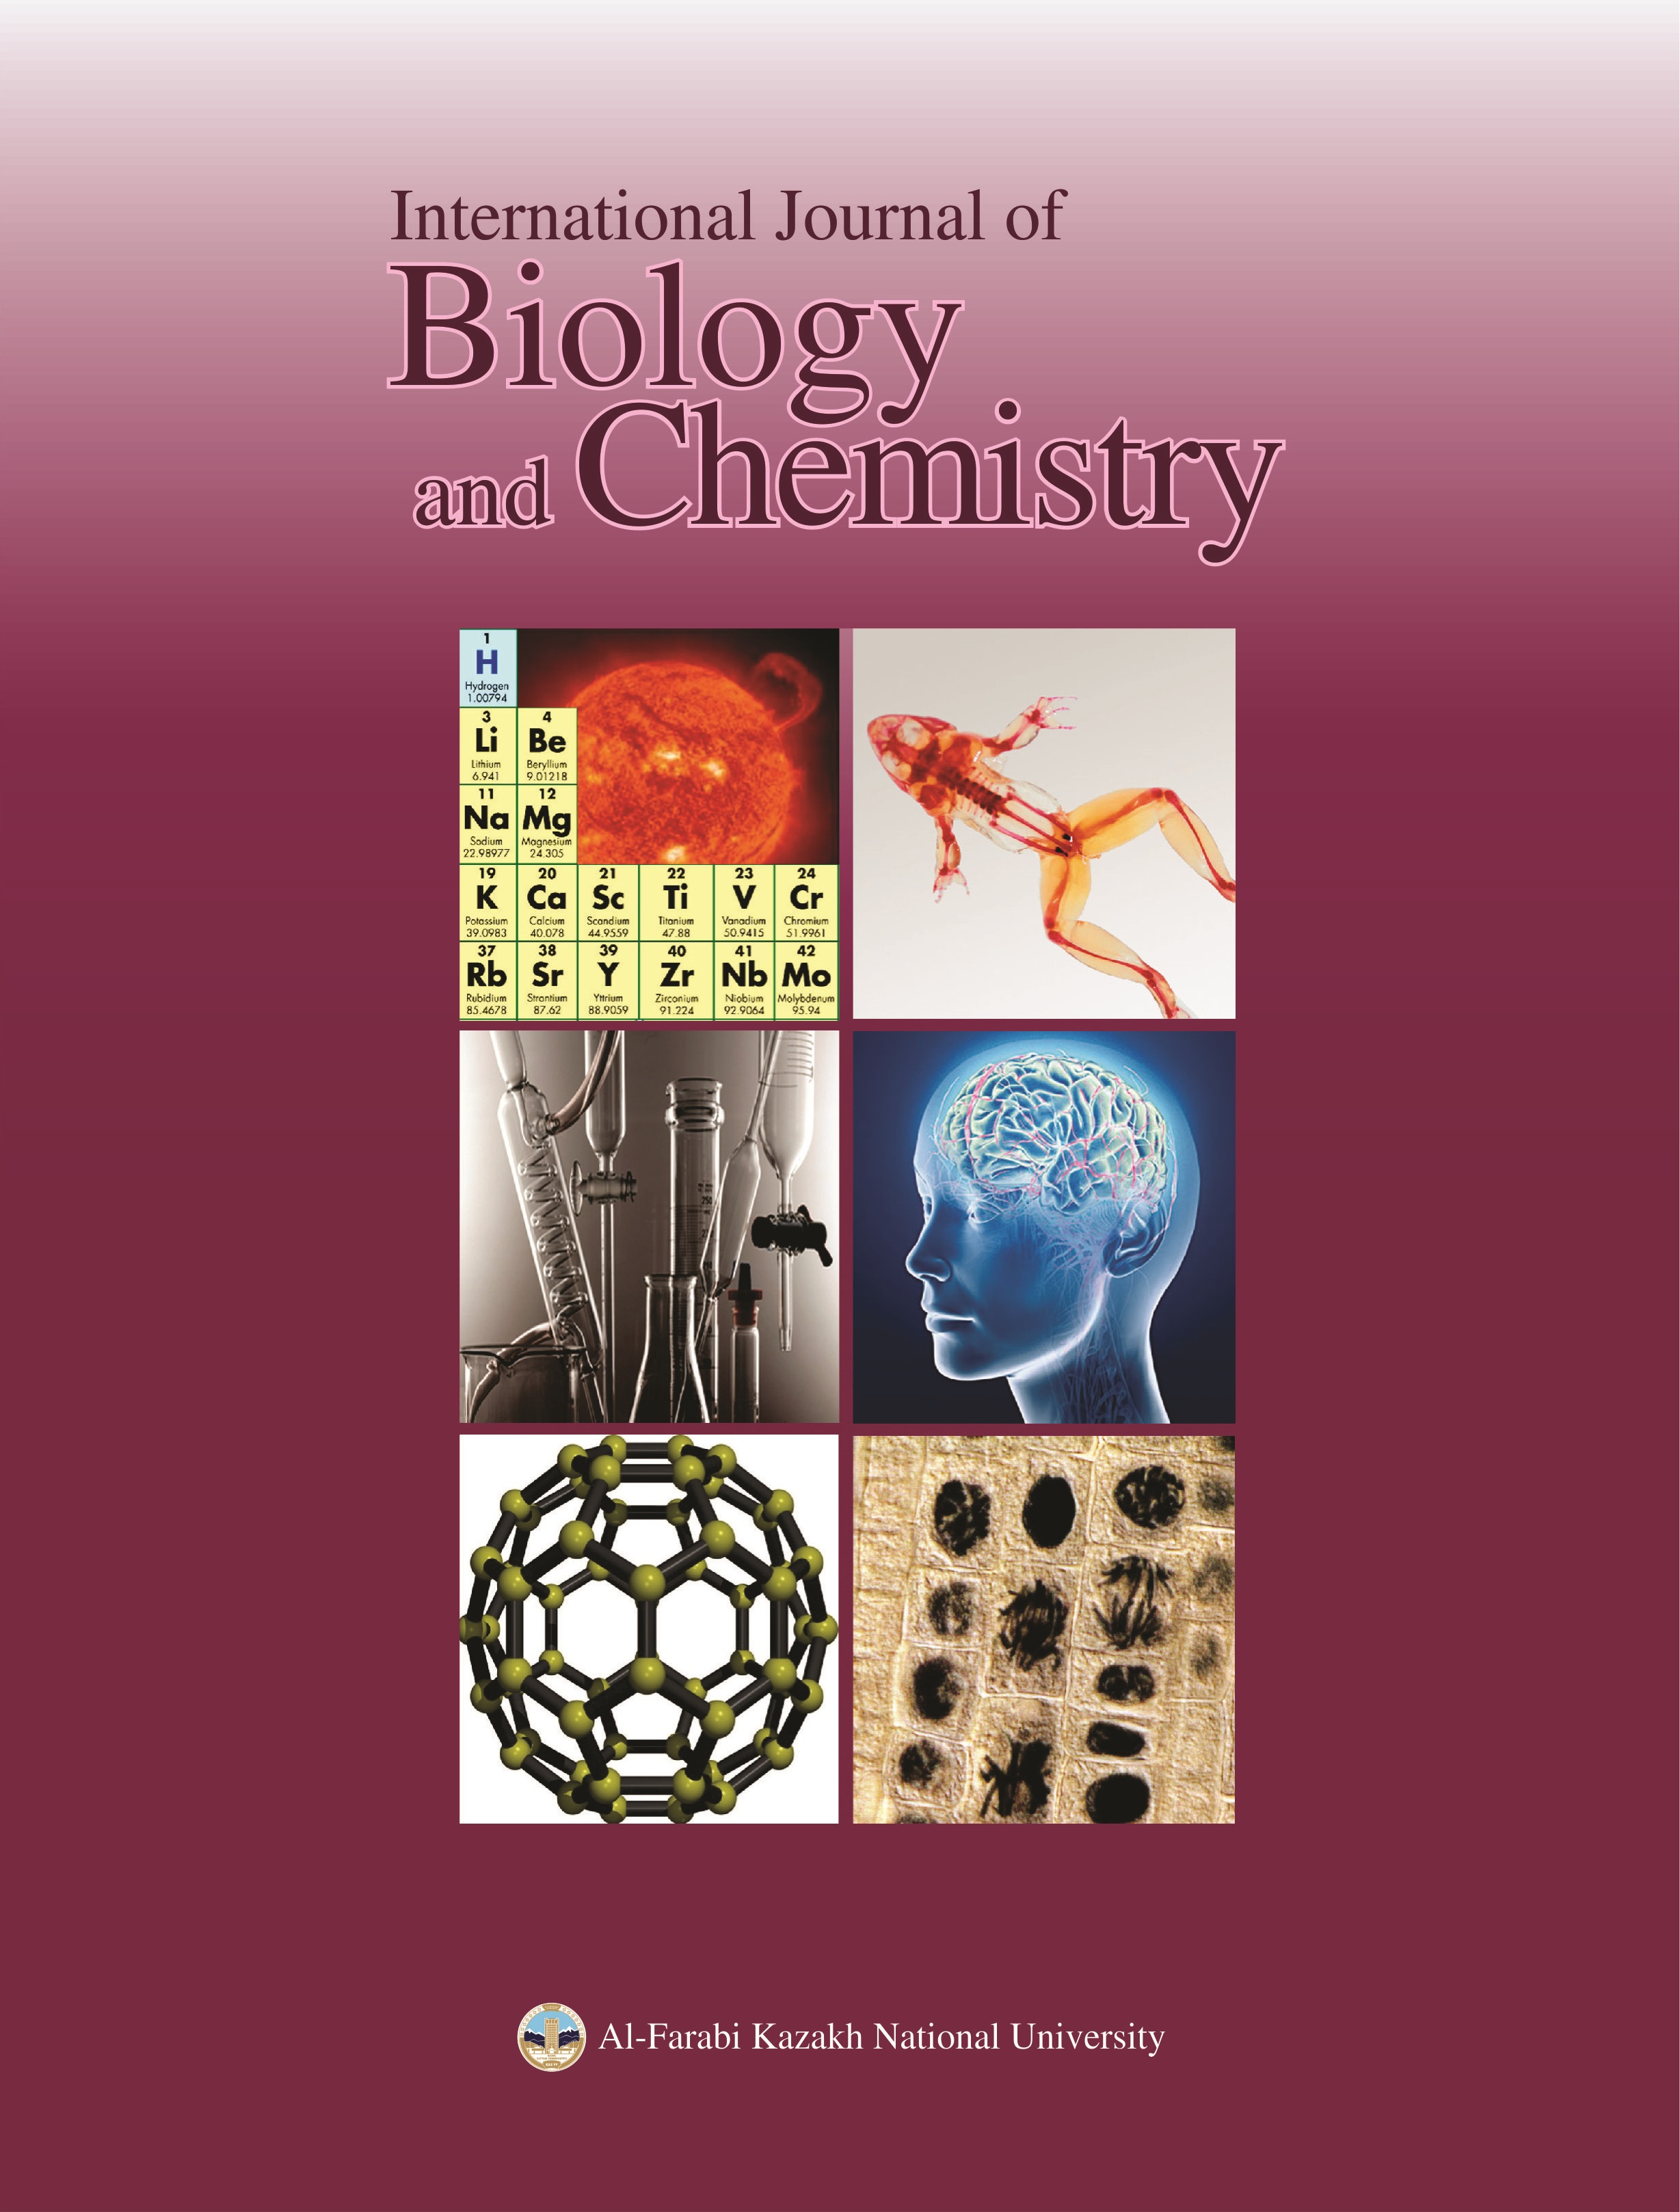 View No. 4 (2012): International Journal of Biology and Chemistry